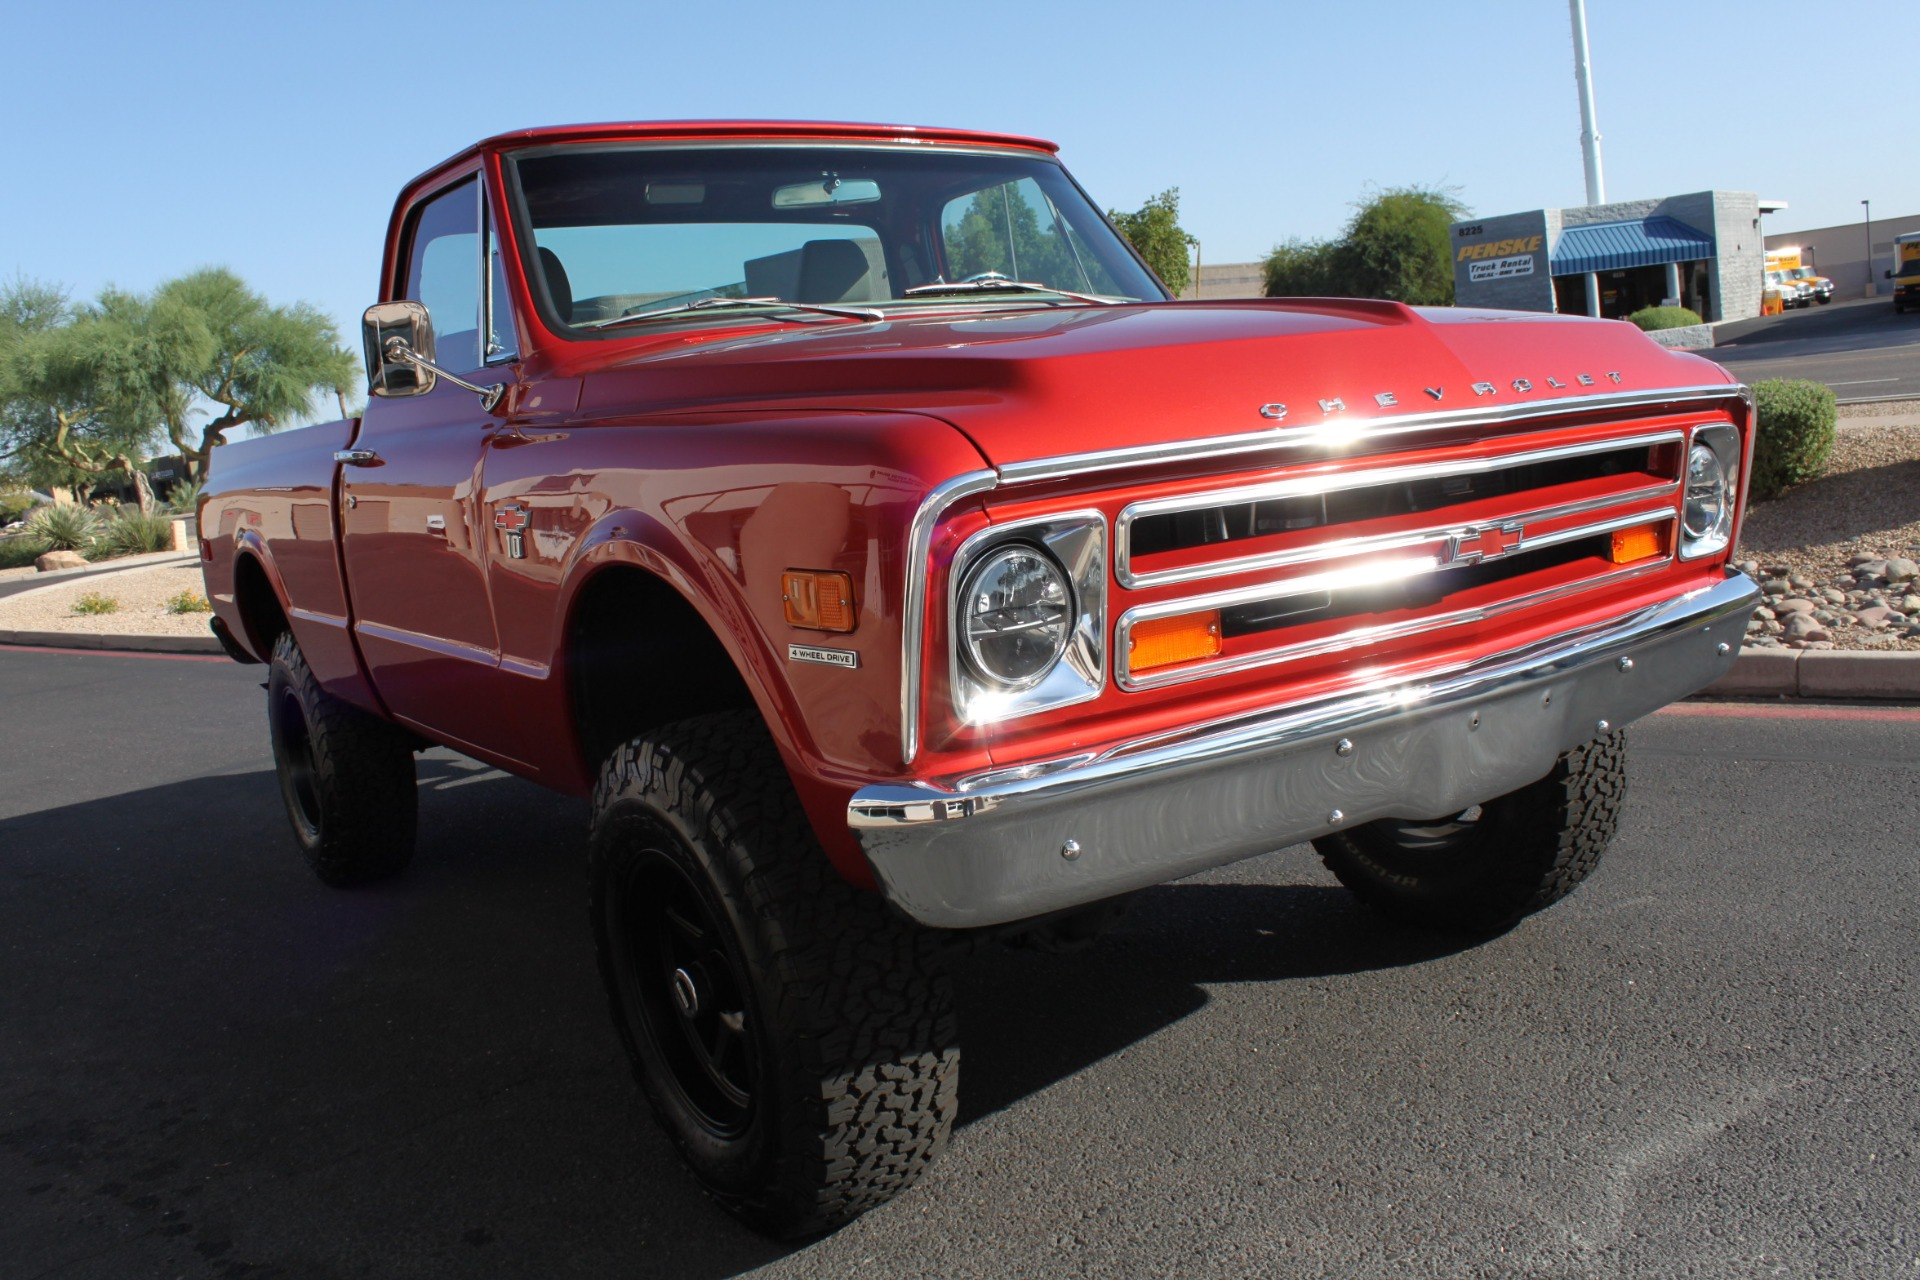 Used-1968-Chevrolet-K10-(C10)-1/2-Ton-Short-Bed-4X4-Cherokee